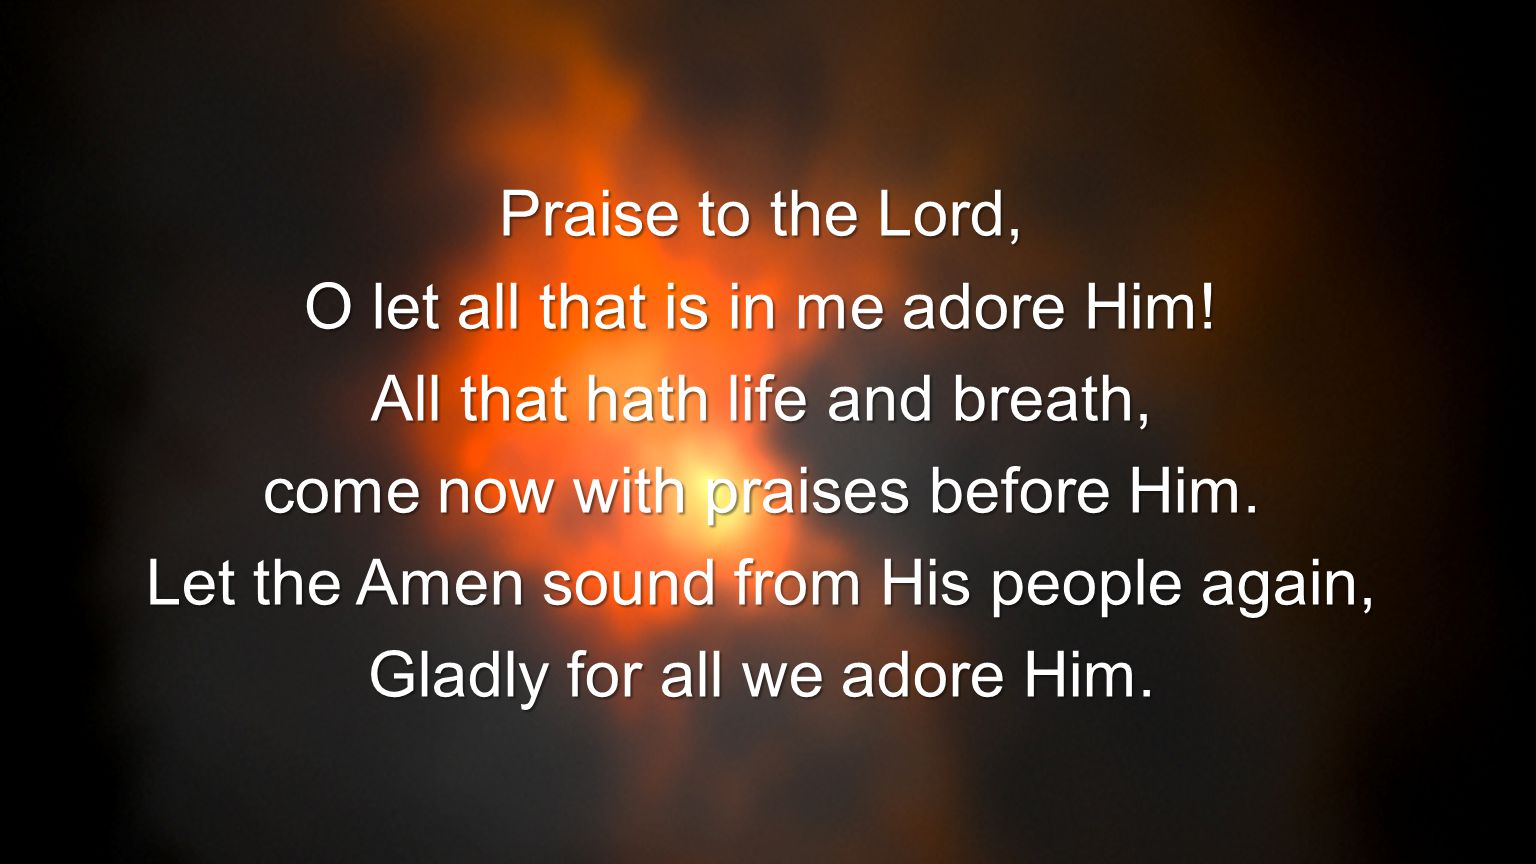 O let all that is in me adore Him! All that hath life and breath,